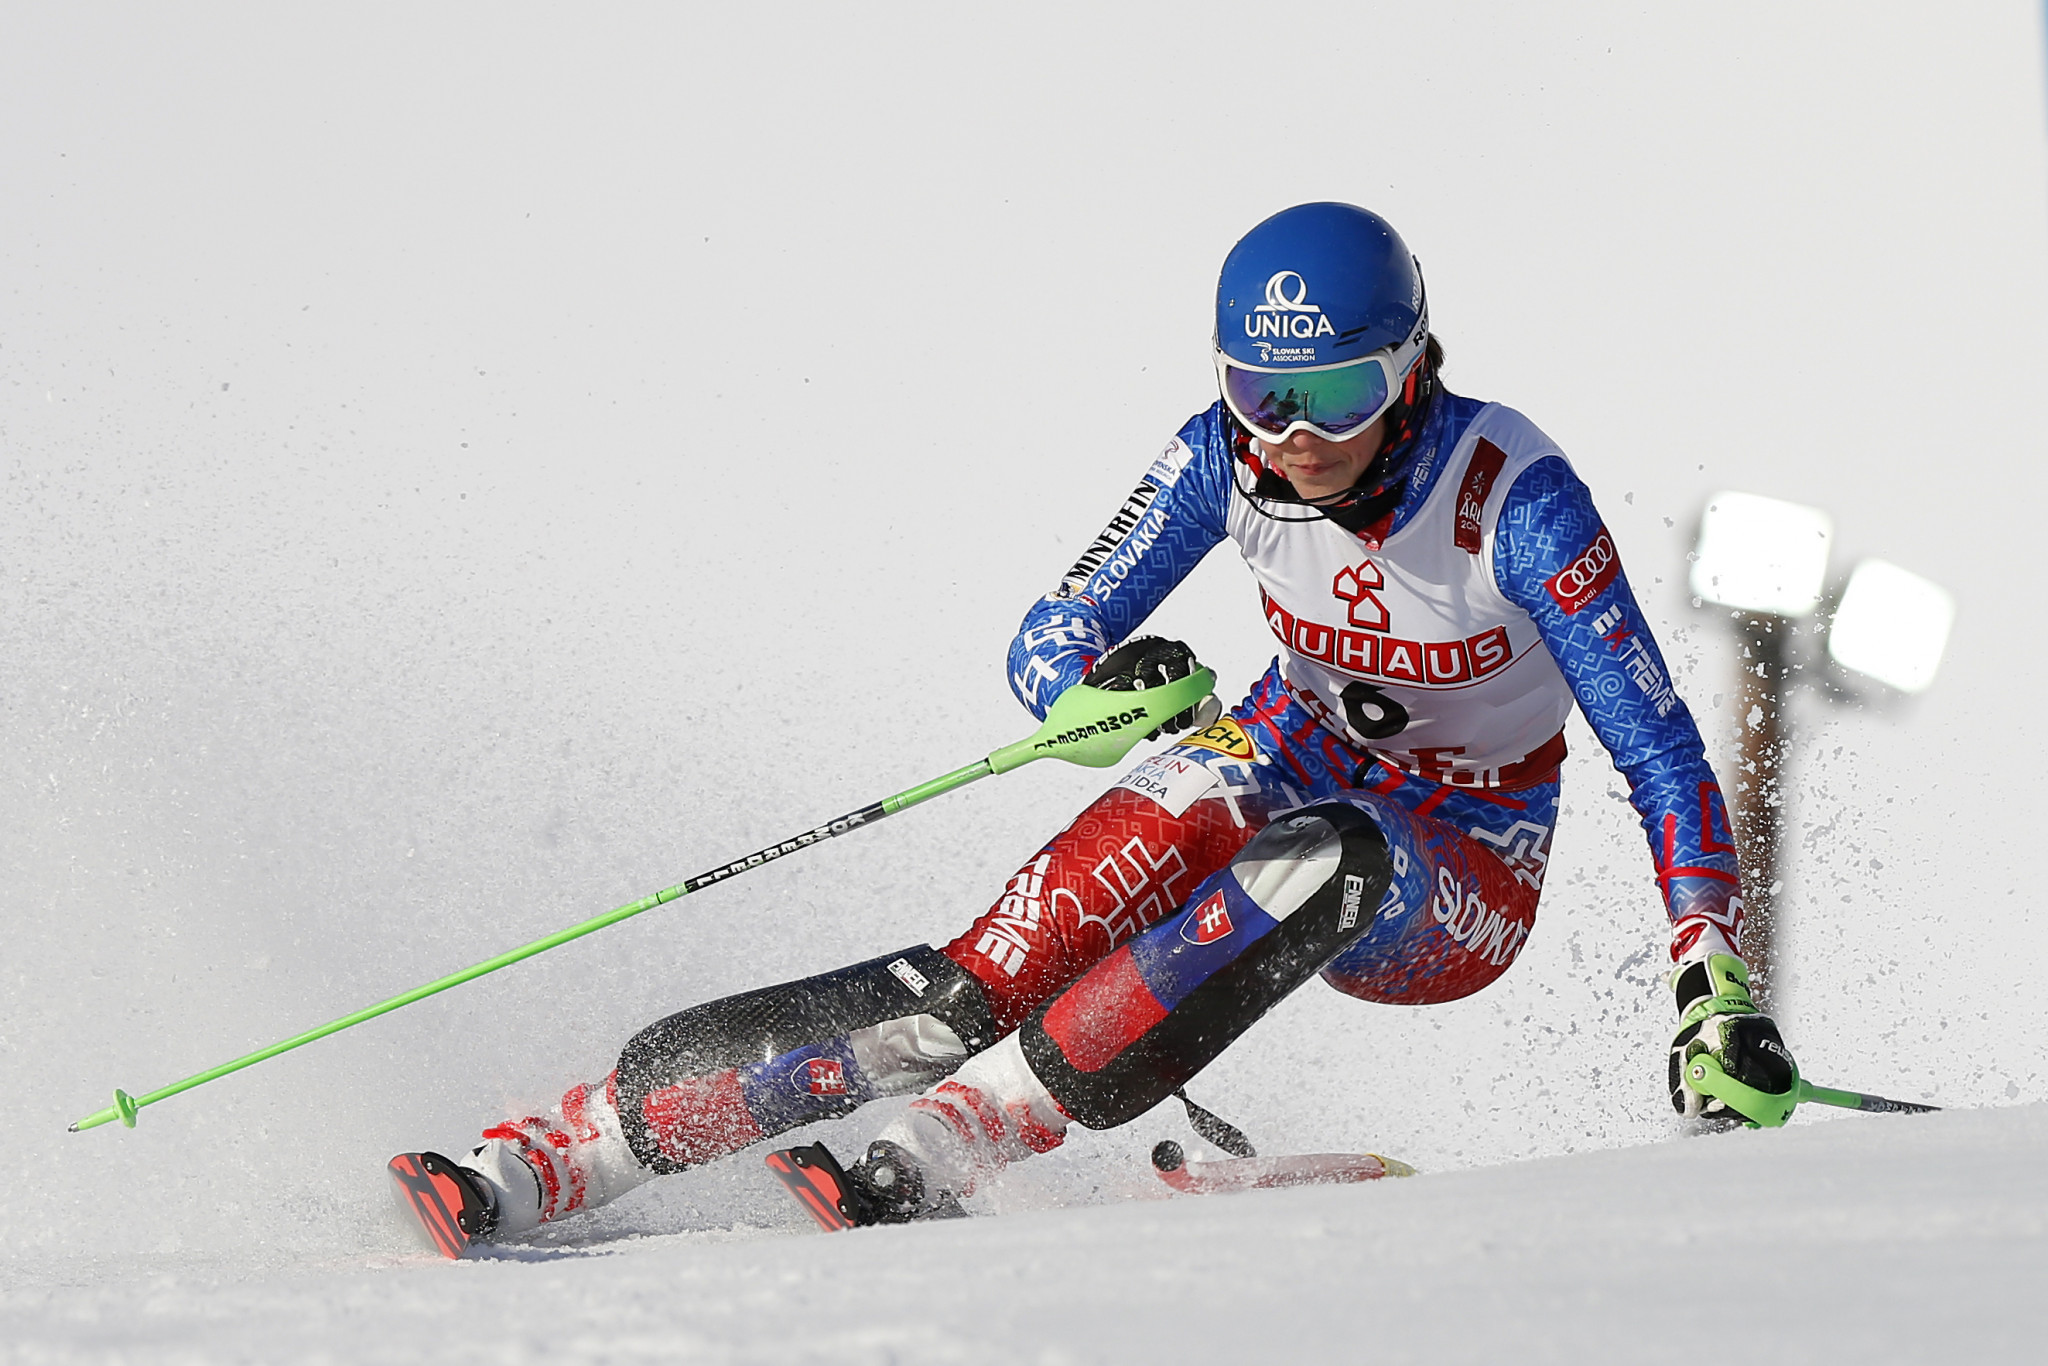 Giant slalom champion Petra Vlhová earned the bronze medal ©Getty Images